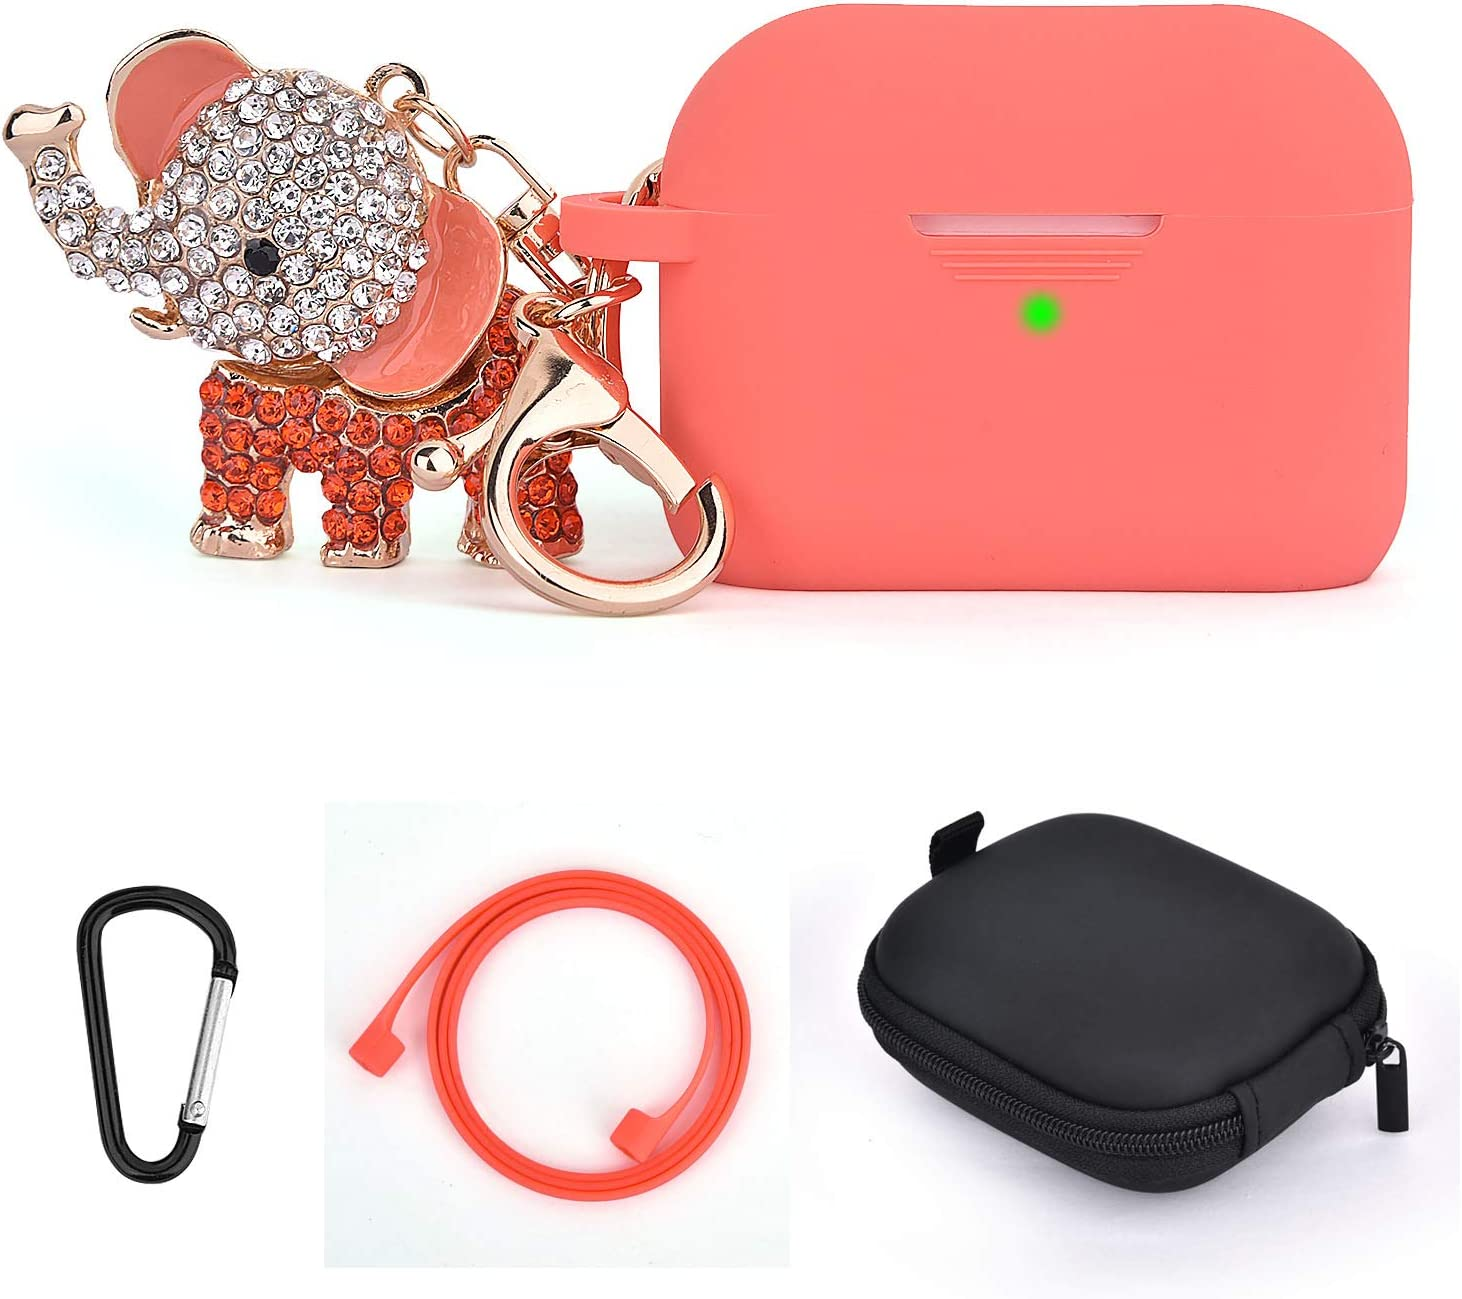 Airpods Pro Case Cover Keychain Cute Set Women,TOROTOP 5 in 1 Silicone Protective Case with Bling Elephant Keychain/Storage Box Compatible for Apple Airpods Pro 2019(Living Coral)